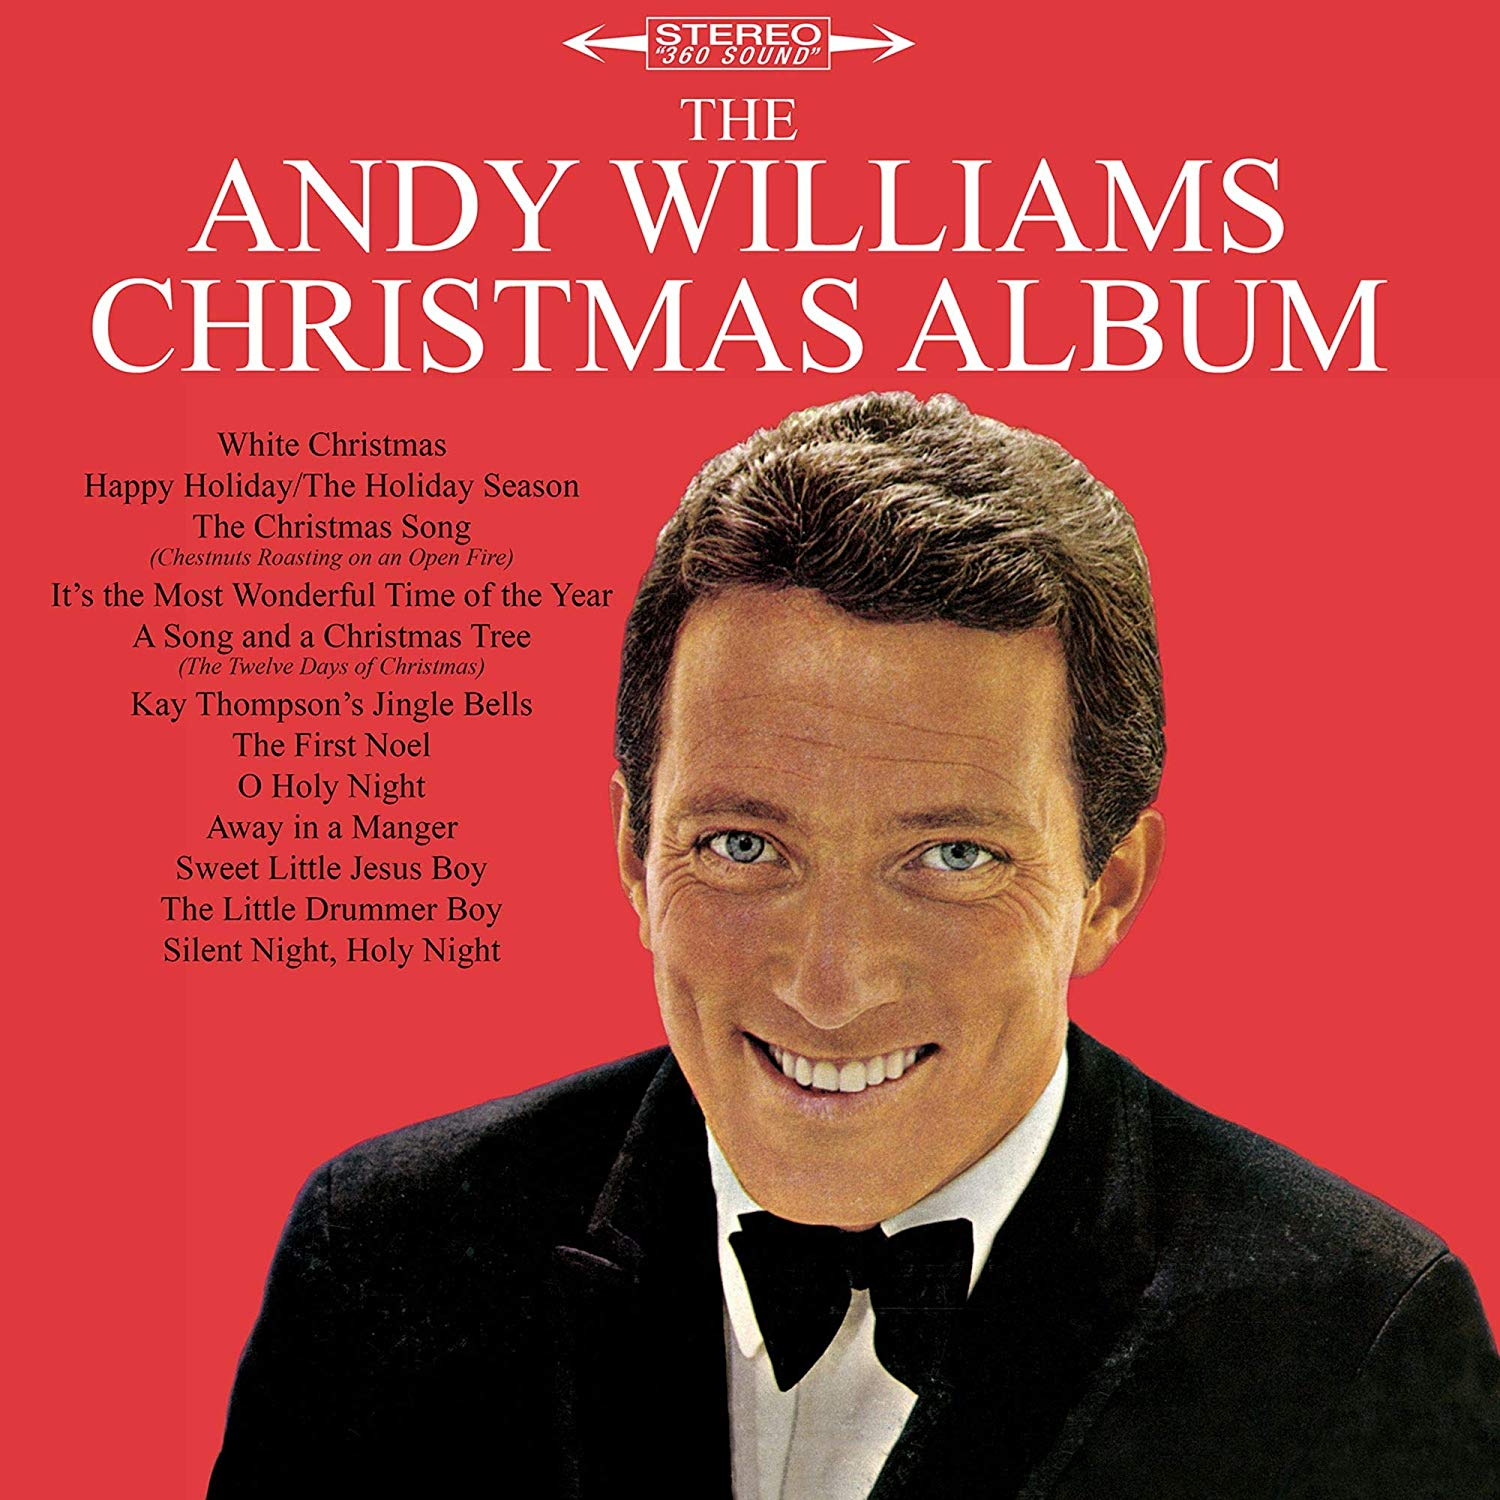 Andy Williams - The Andy Williams Christmas Album [LP] (180 Gram Audiophile Vinyl, Translucent Blue Colored Vinyl, gatefold, limited) - Urban Vinyl | Records, Headphones, and more.